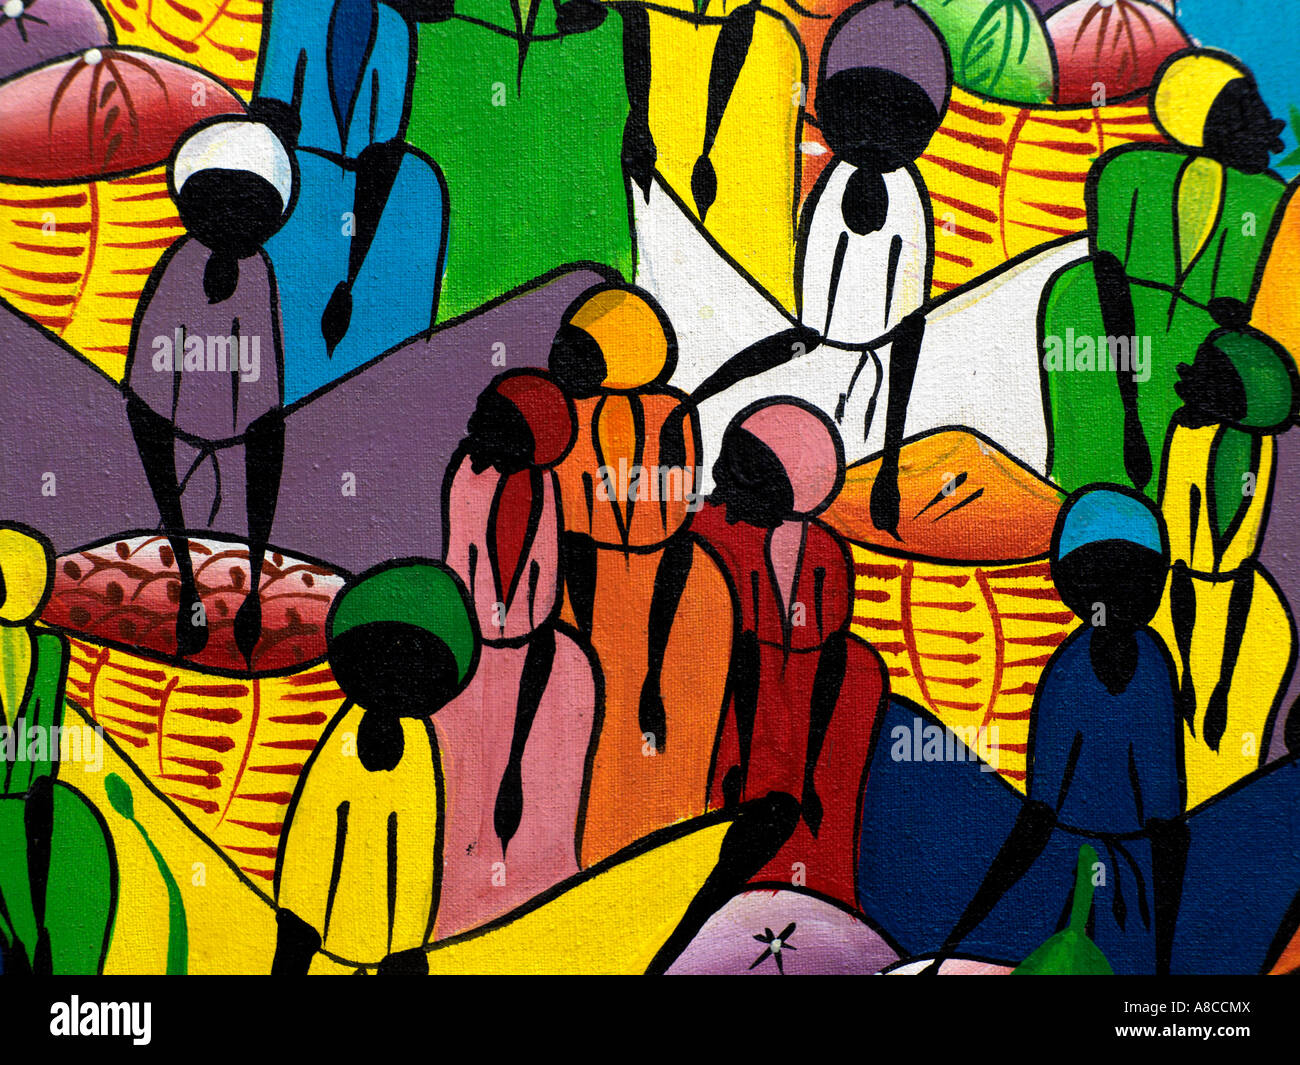 Faceless People Voodoo Colourful Painting - Haitian - Stock Image